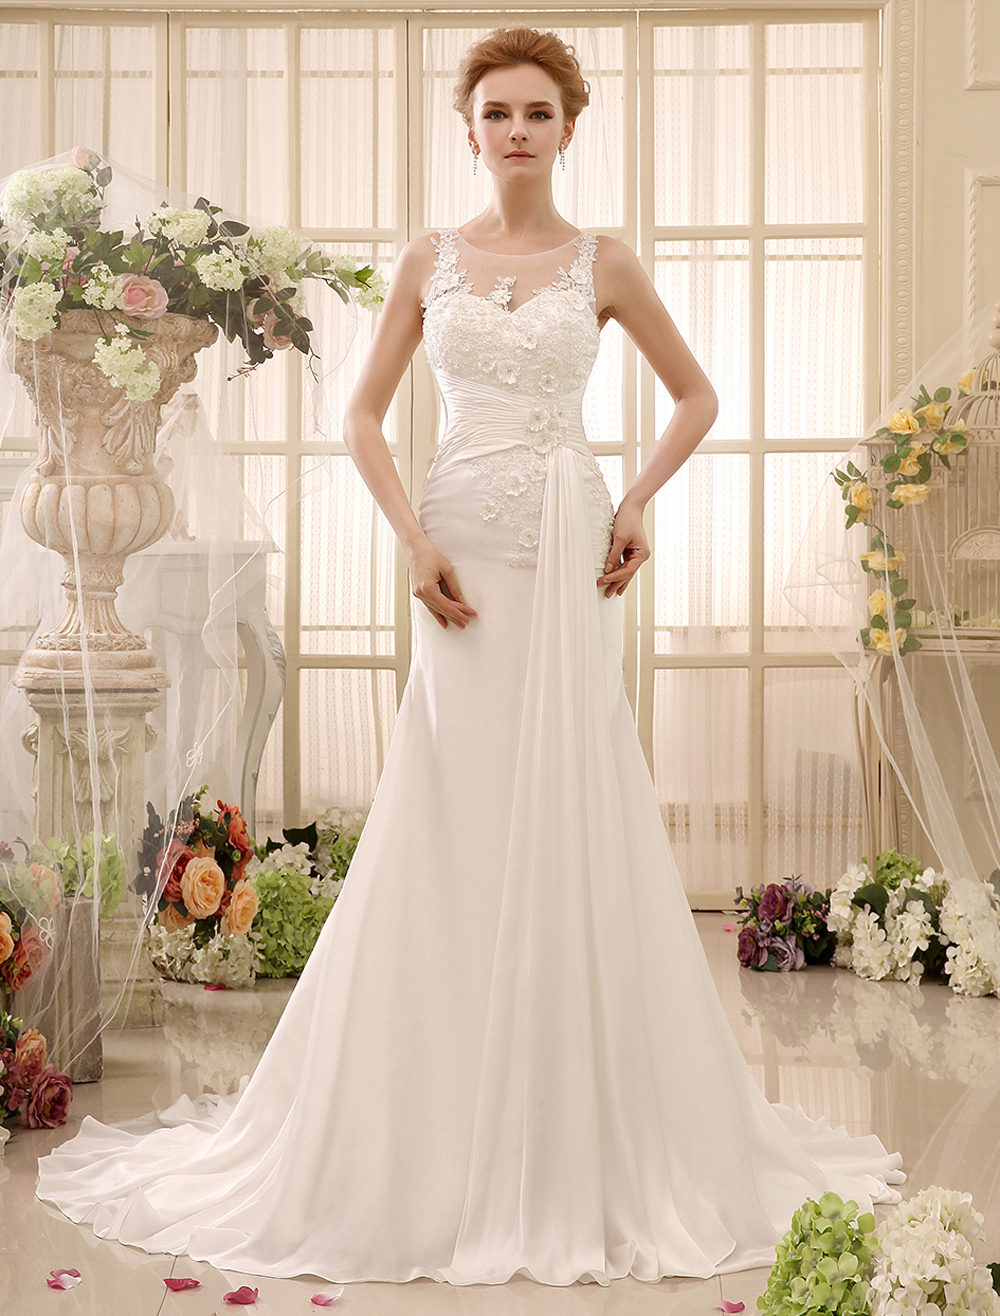 Chapel Train Beading Ivory Mermaid Bridal Wedding Gown with Jewel Neck Spaghetti Strap  Milanoo